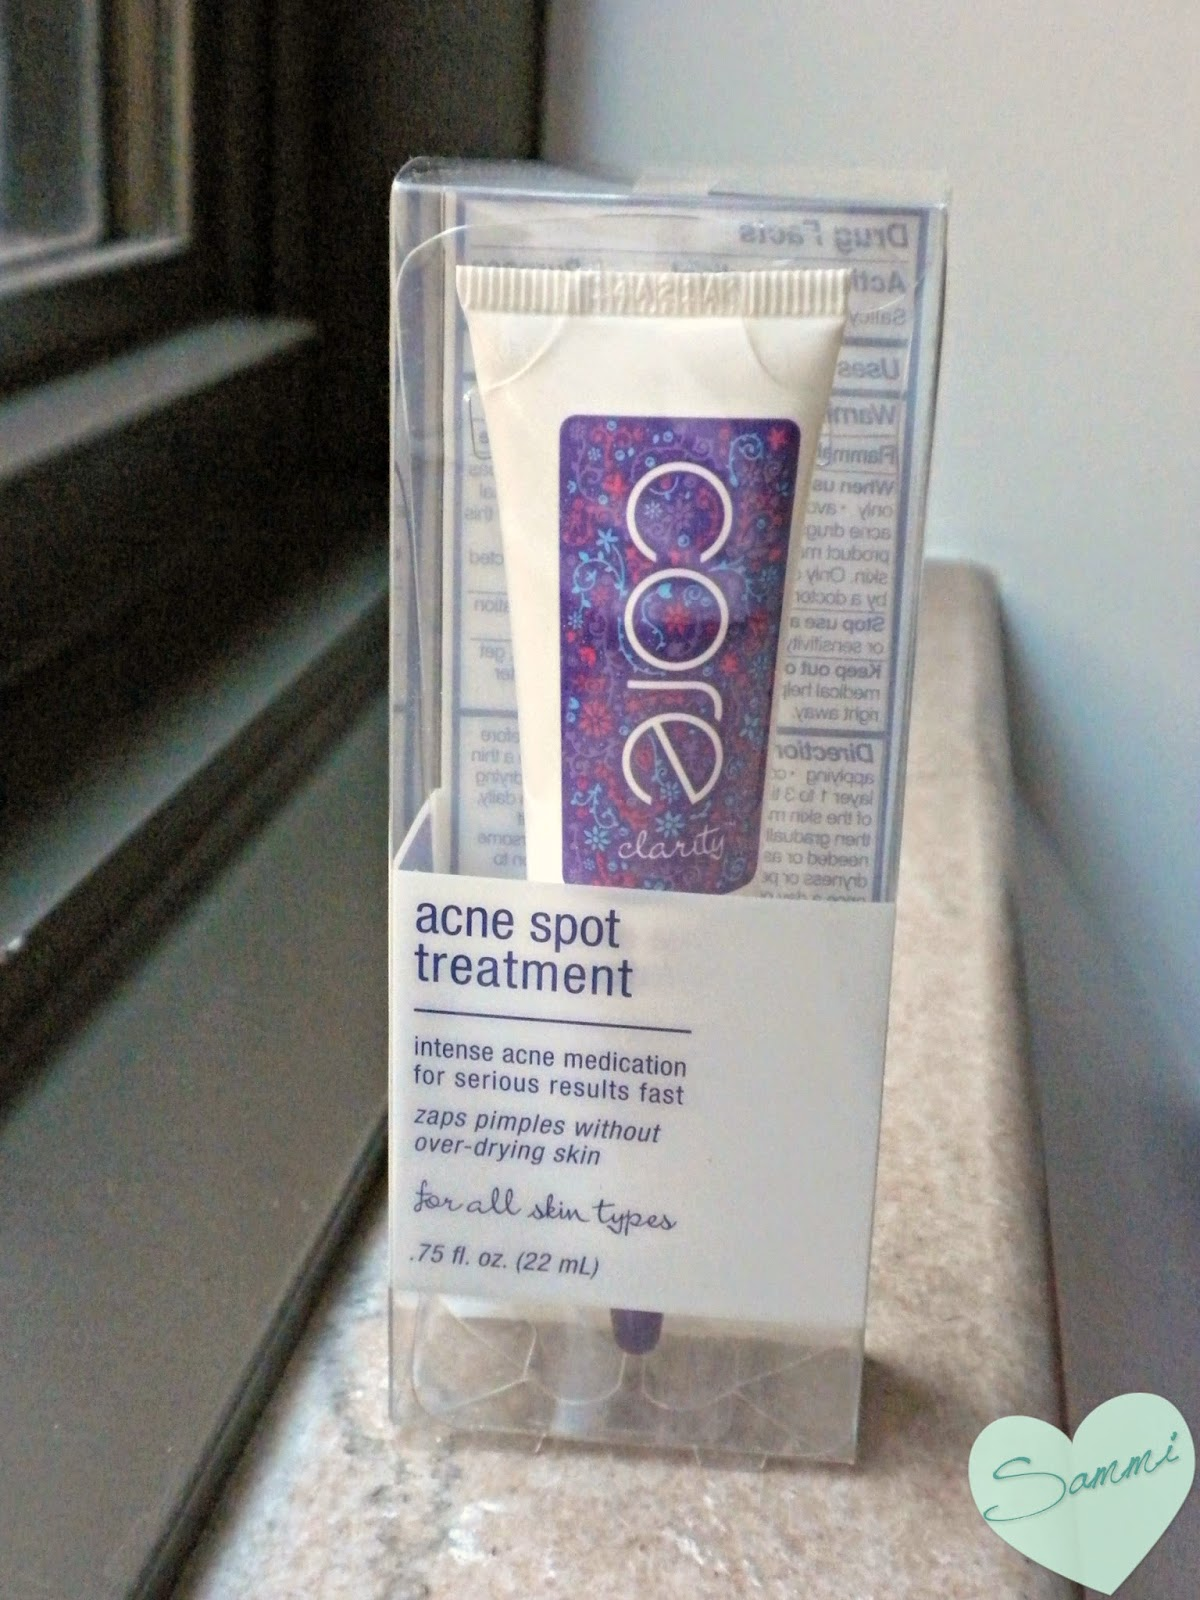 Acne Spot Treatment ($6.29 for .75 fl oz)